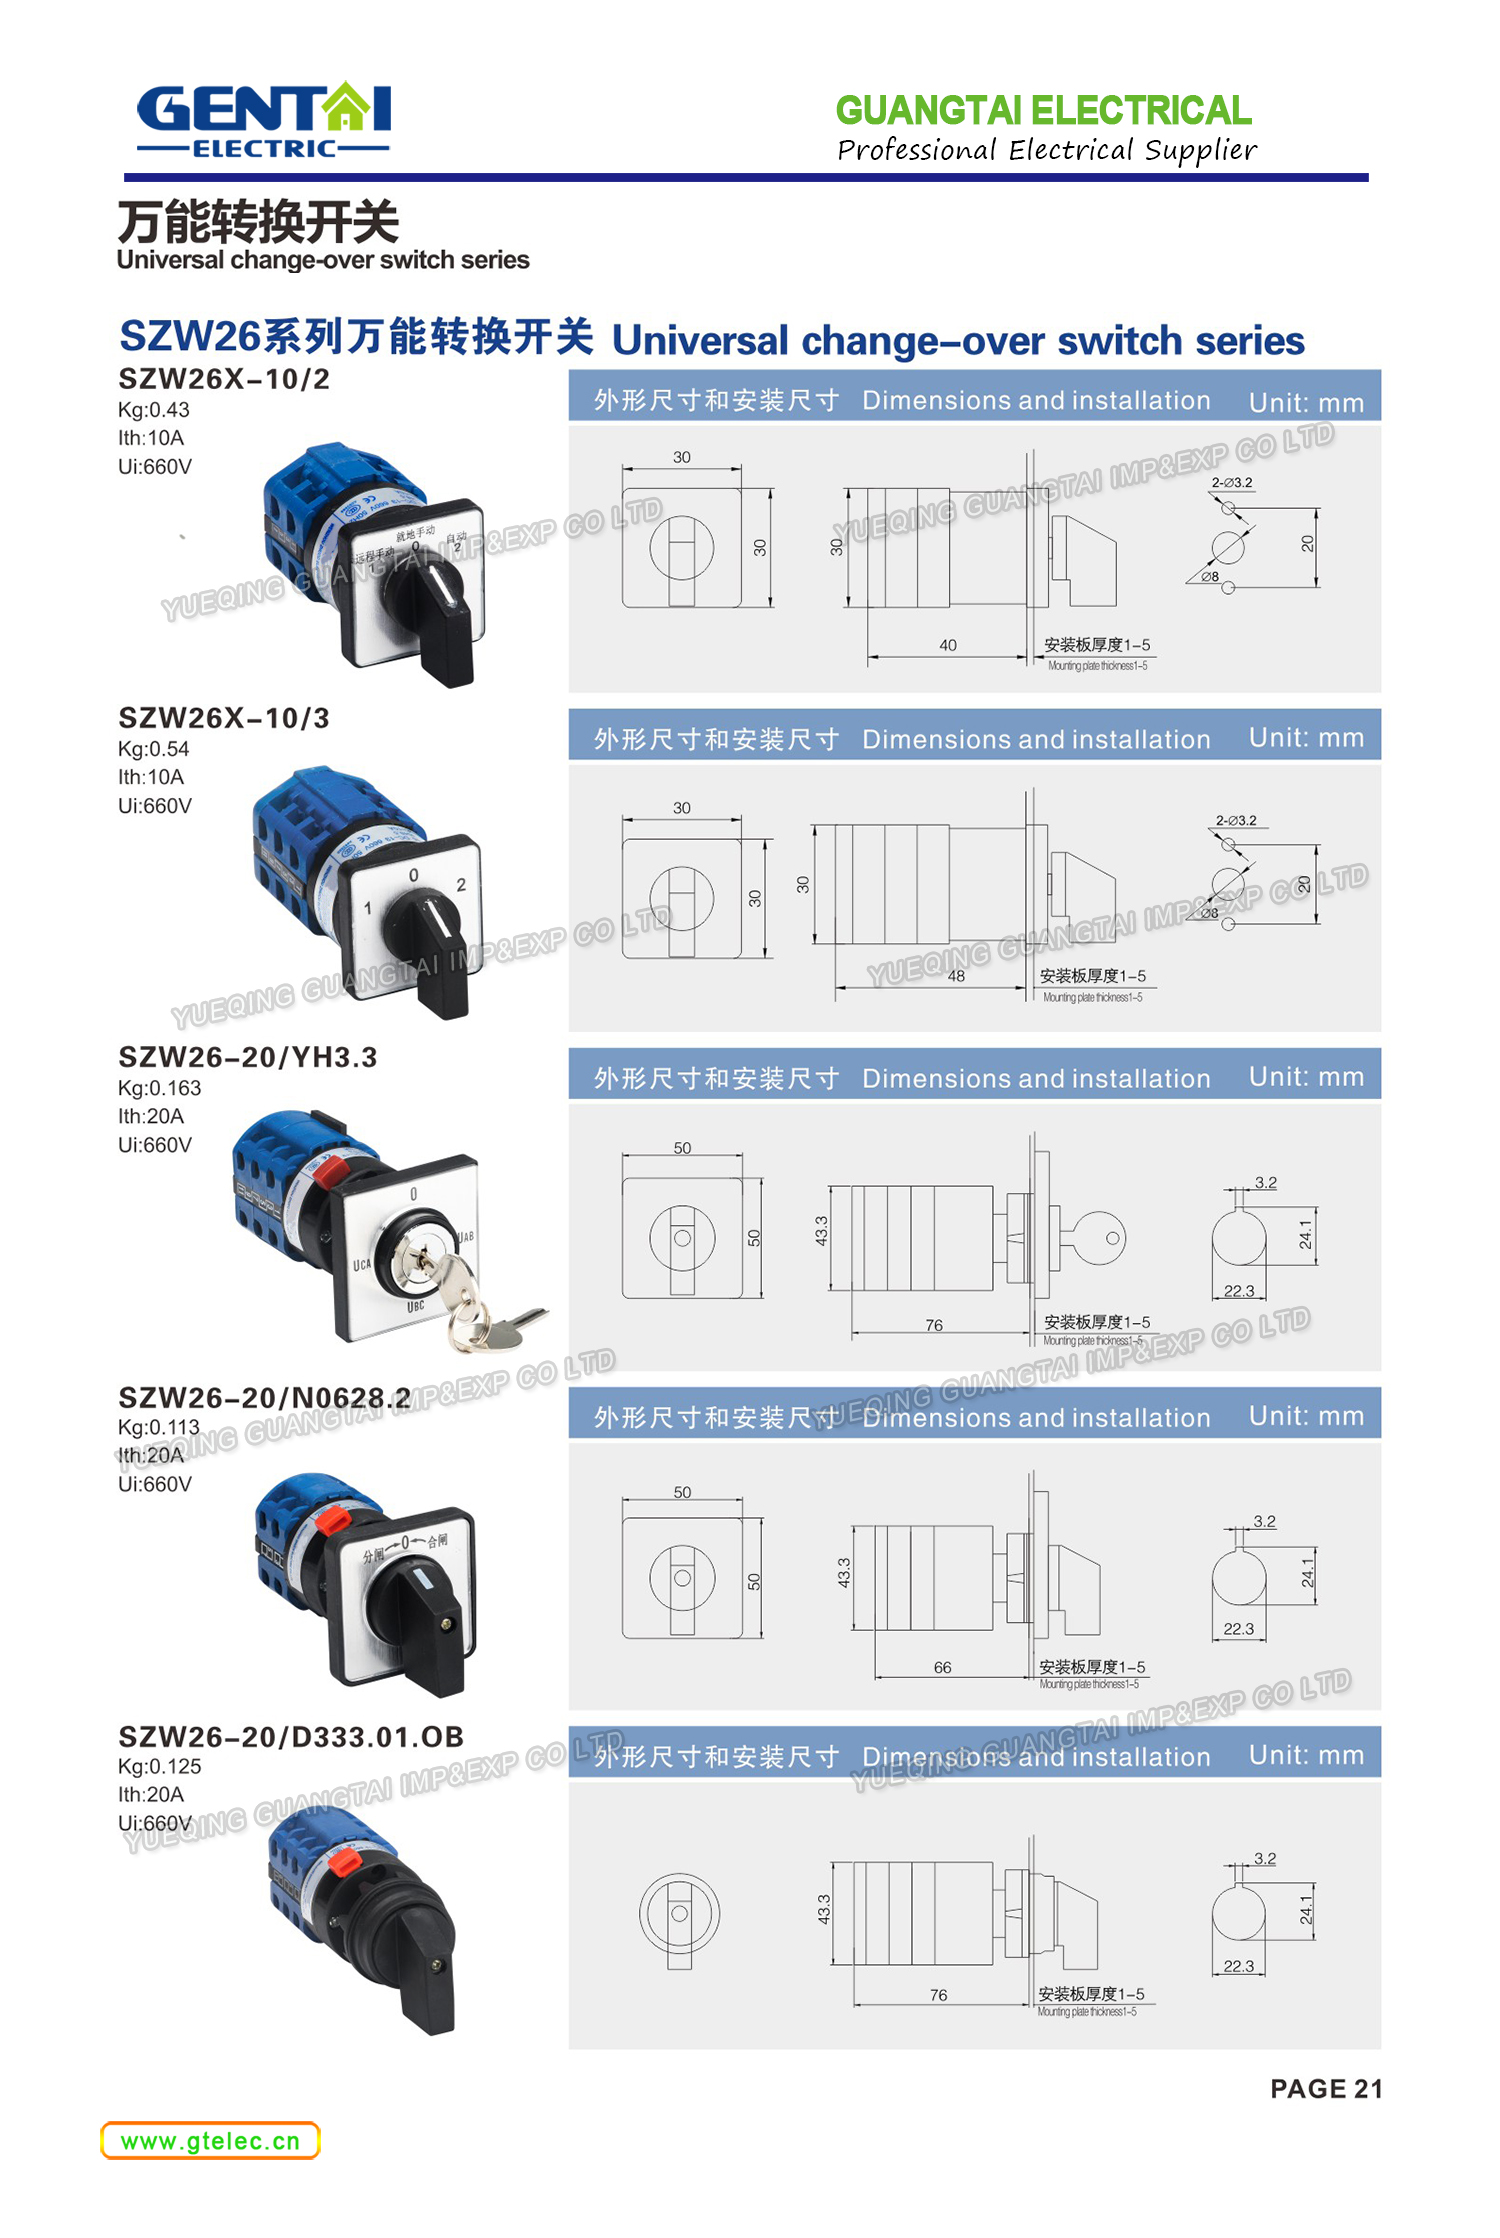 Voltmeter Switch 3 Phase 3 Wire Rotary Switch Cam Switch Buy Changeover Selector Switch Cam Changeover Selector Switch 3 Phase 3 Wire Rotary Switch Product On Alibaba Com